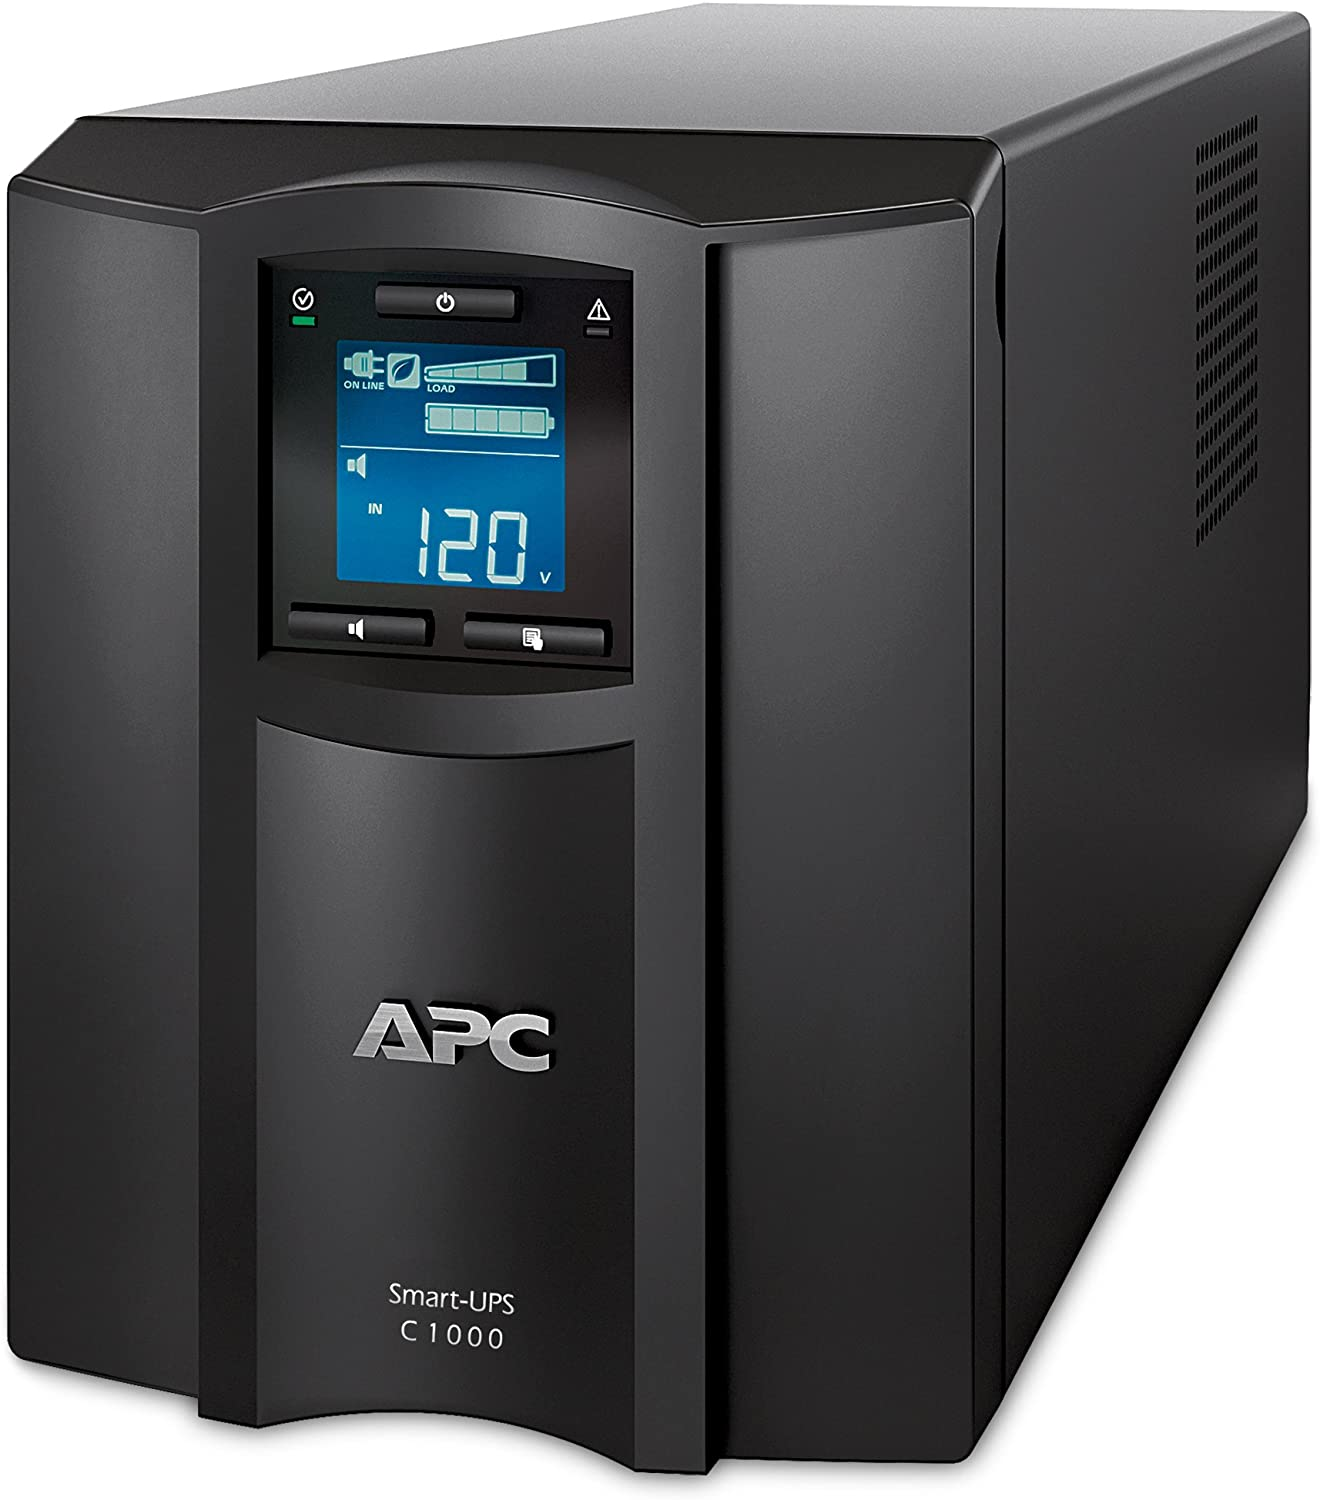 APC SMC1000C Sinewave UPS Battery Backup